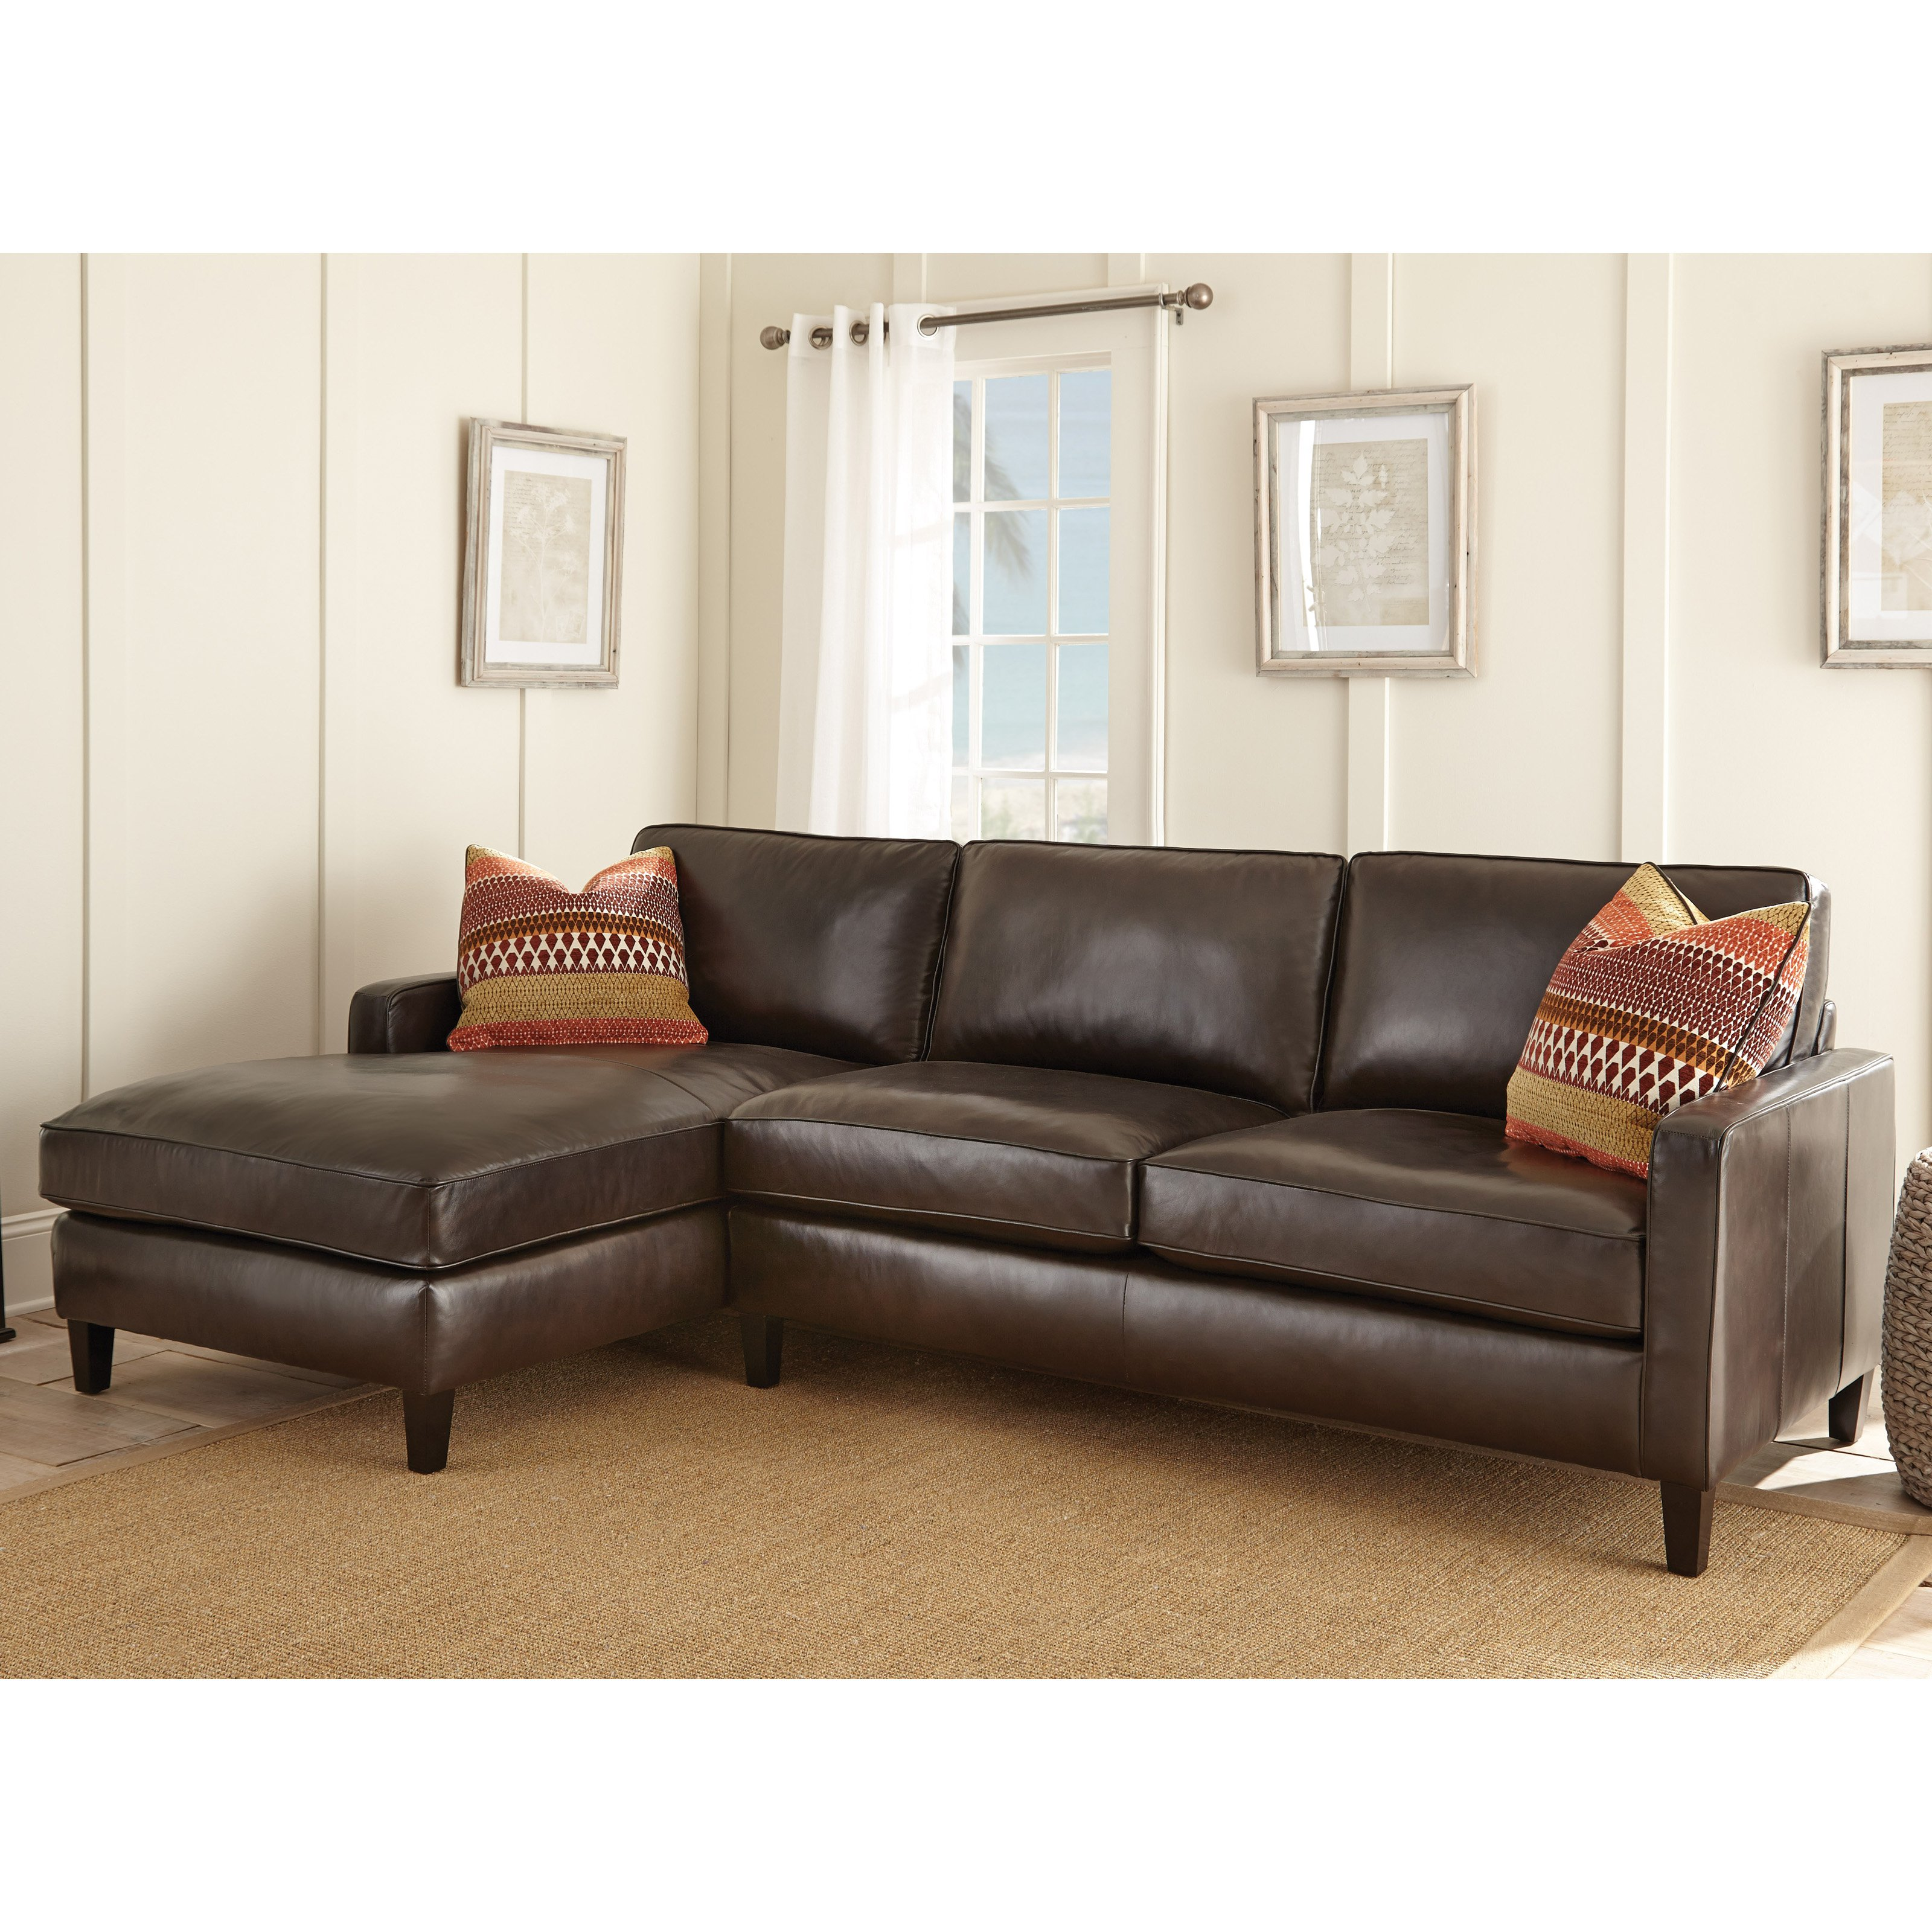 Steve Silver Anquilla Sectional